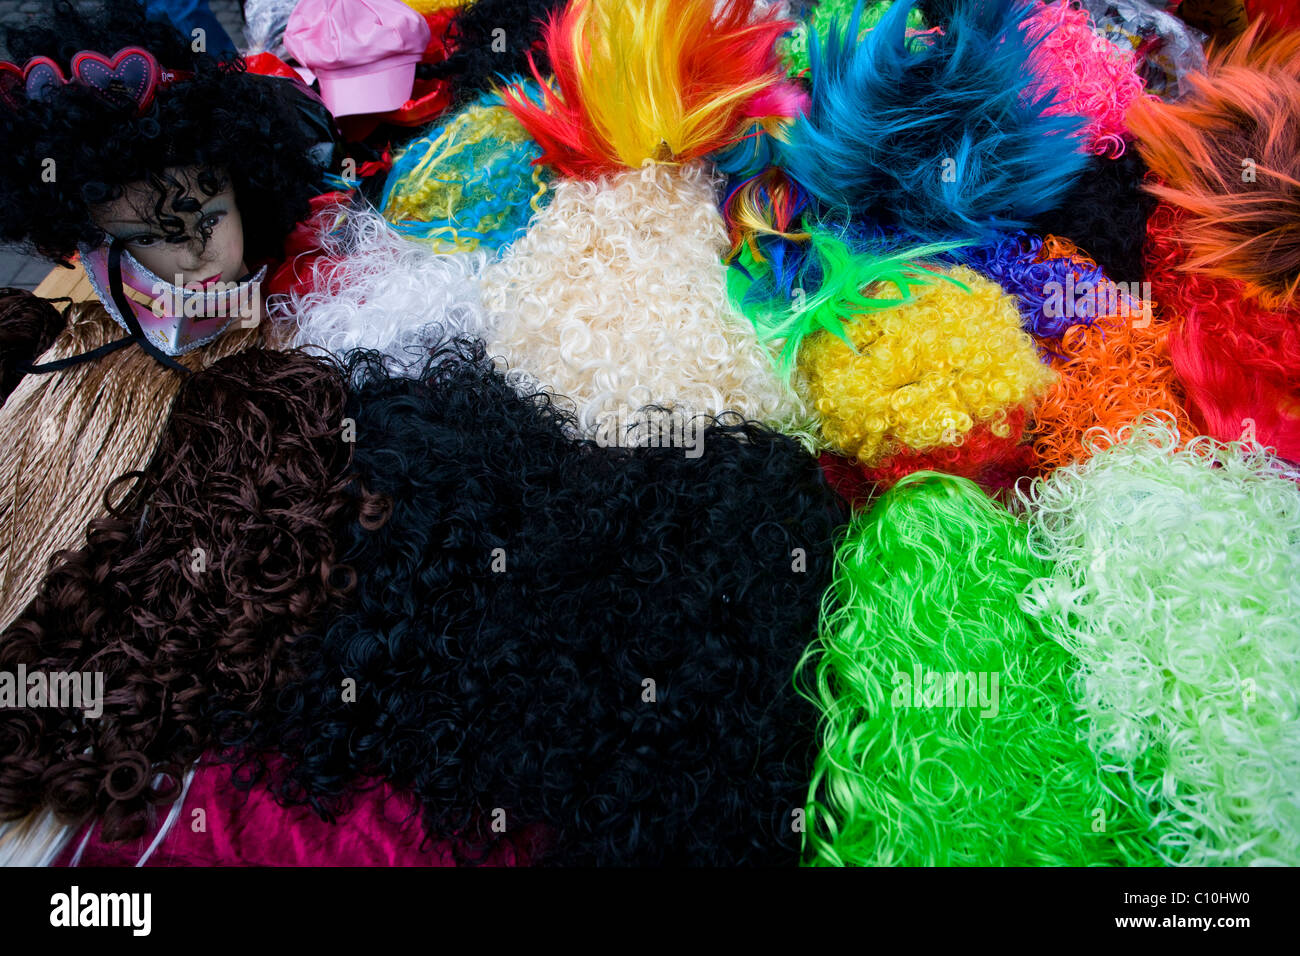 Colourful wigs for costume parties. Carnival in Cologne, Germany. - Stock Image